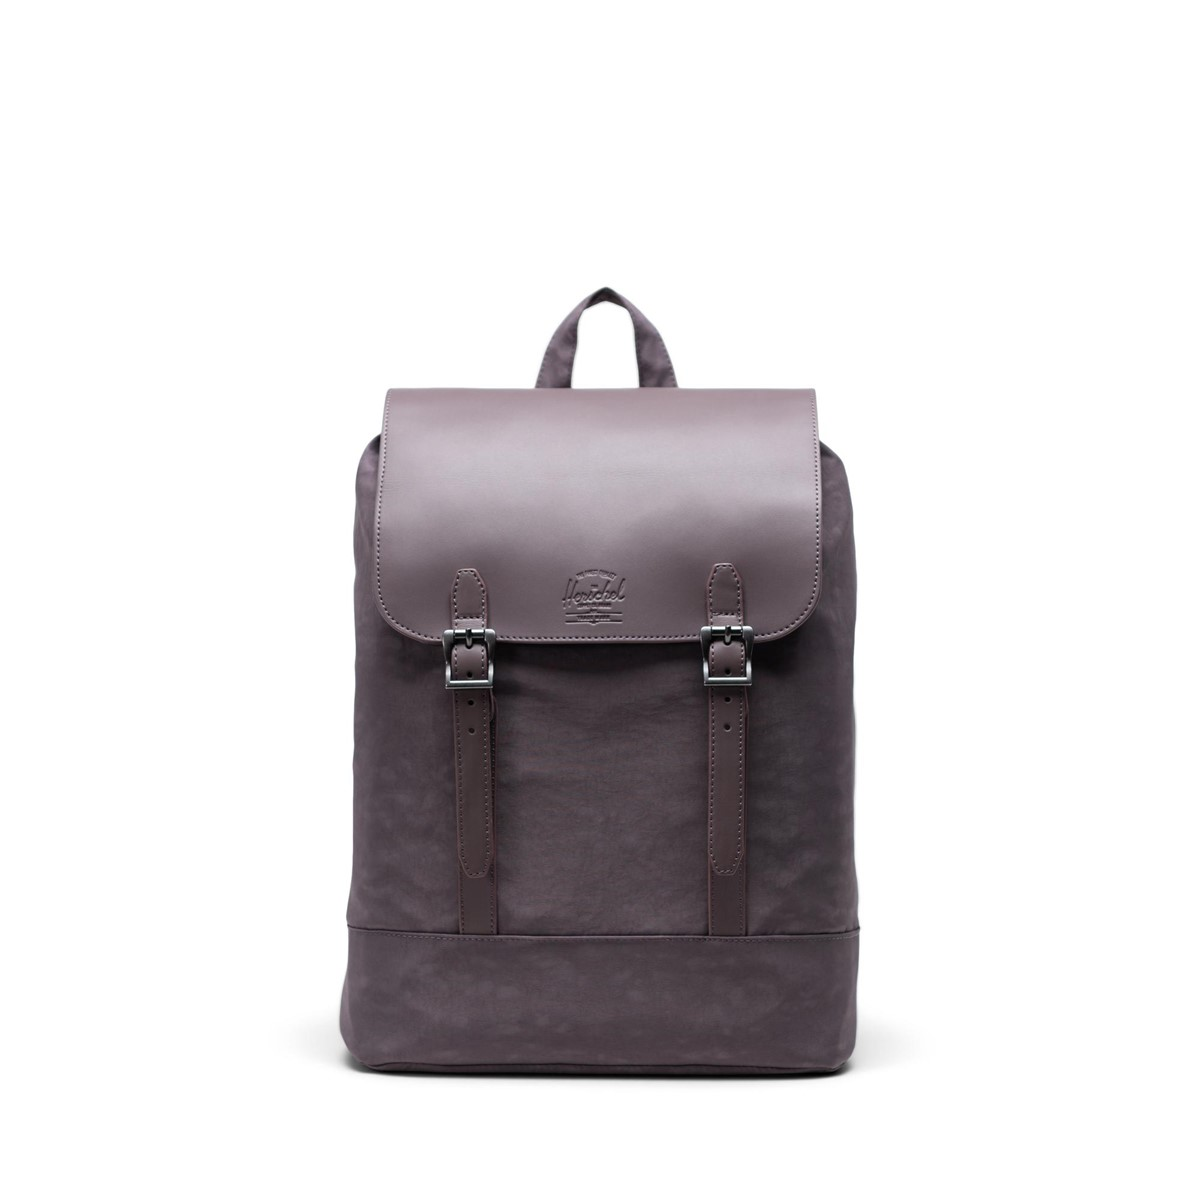 Orion Retreat Small Backpack in Grey